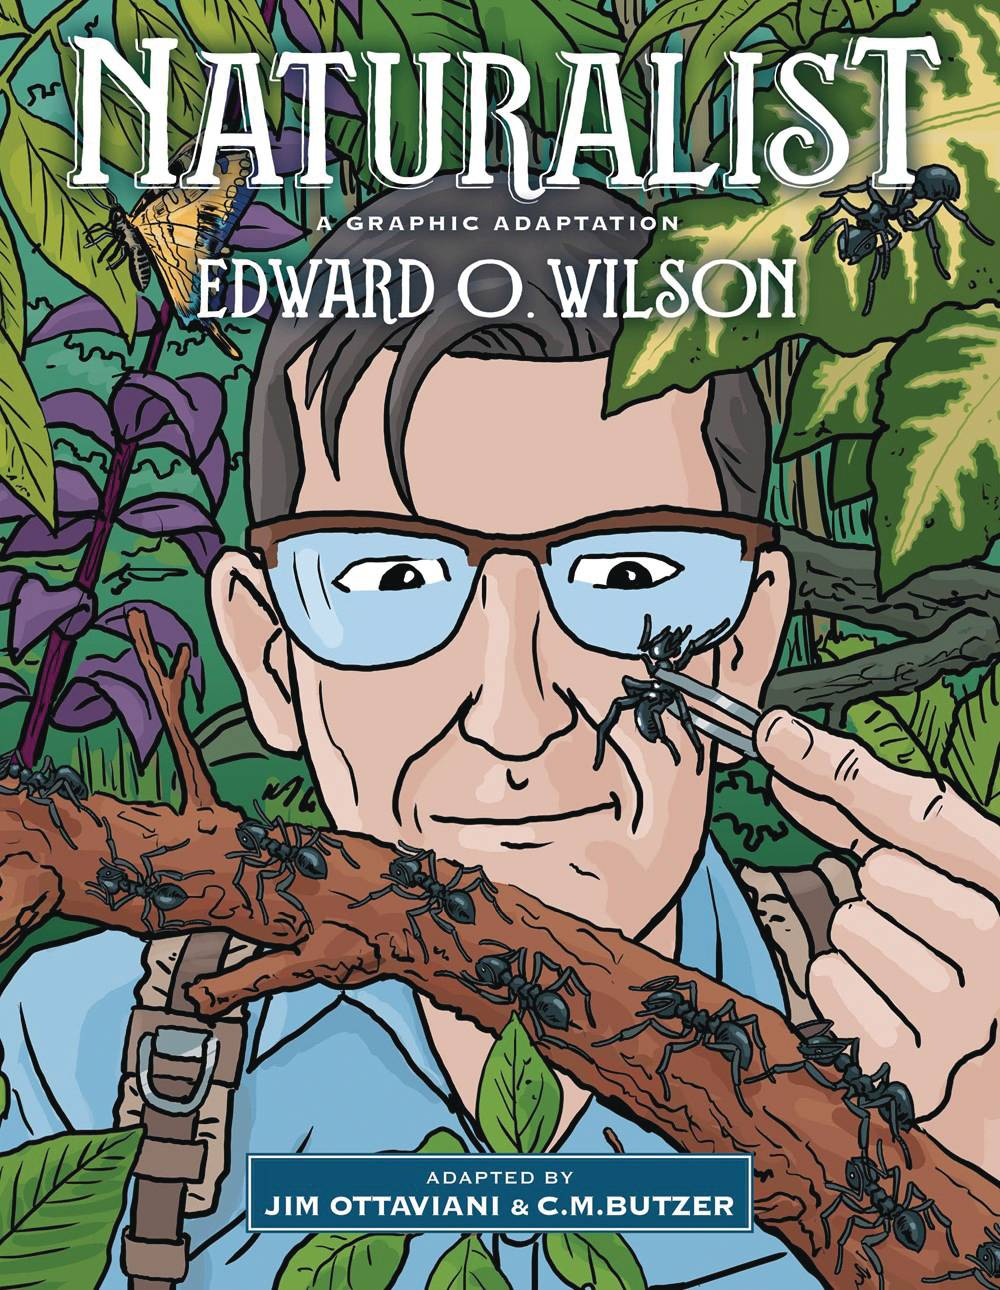 NATURALIST GRAPHIC ADAPTATION